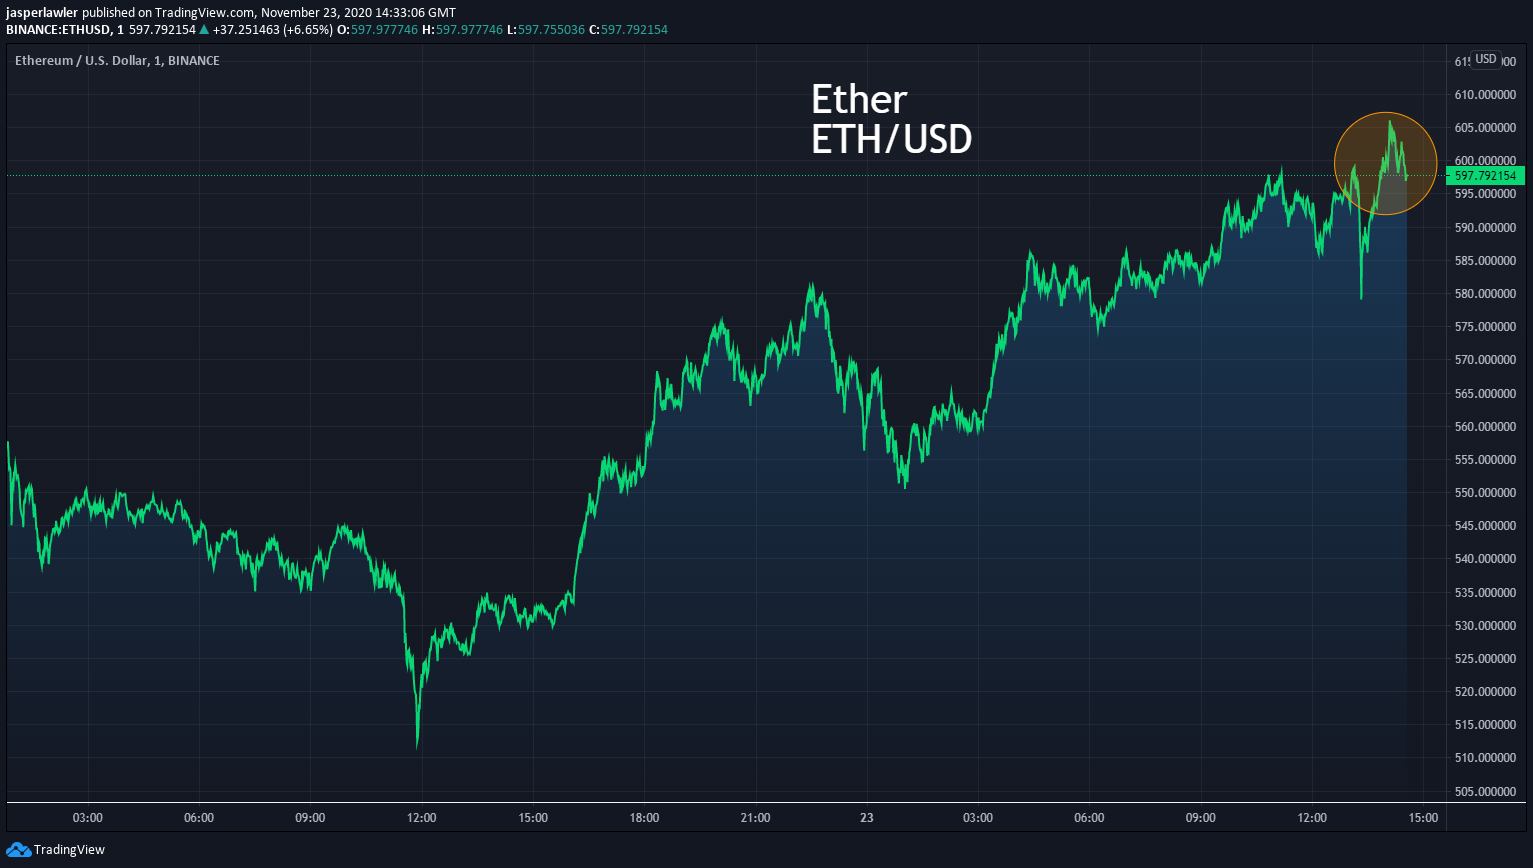 BREAKING NEWS- Ether above $600 for first time since Jan 2018 #ETHUSD #Etherium